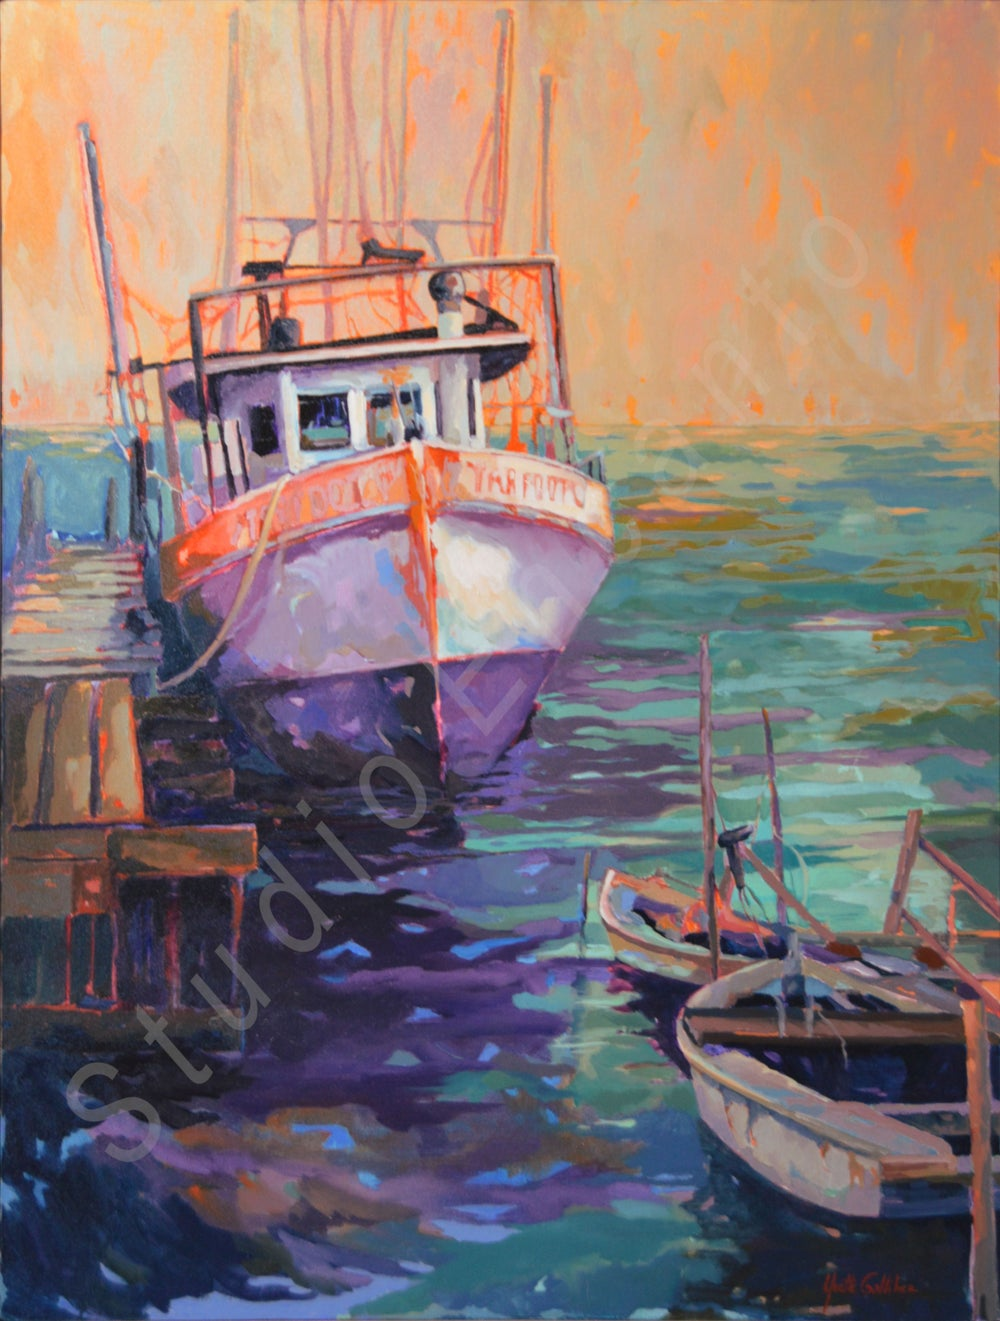 Image of Apalachicola by Yvette Galliher